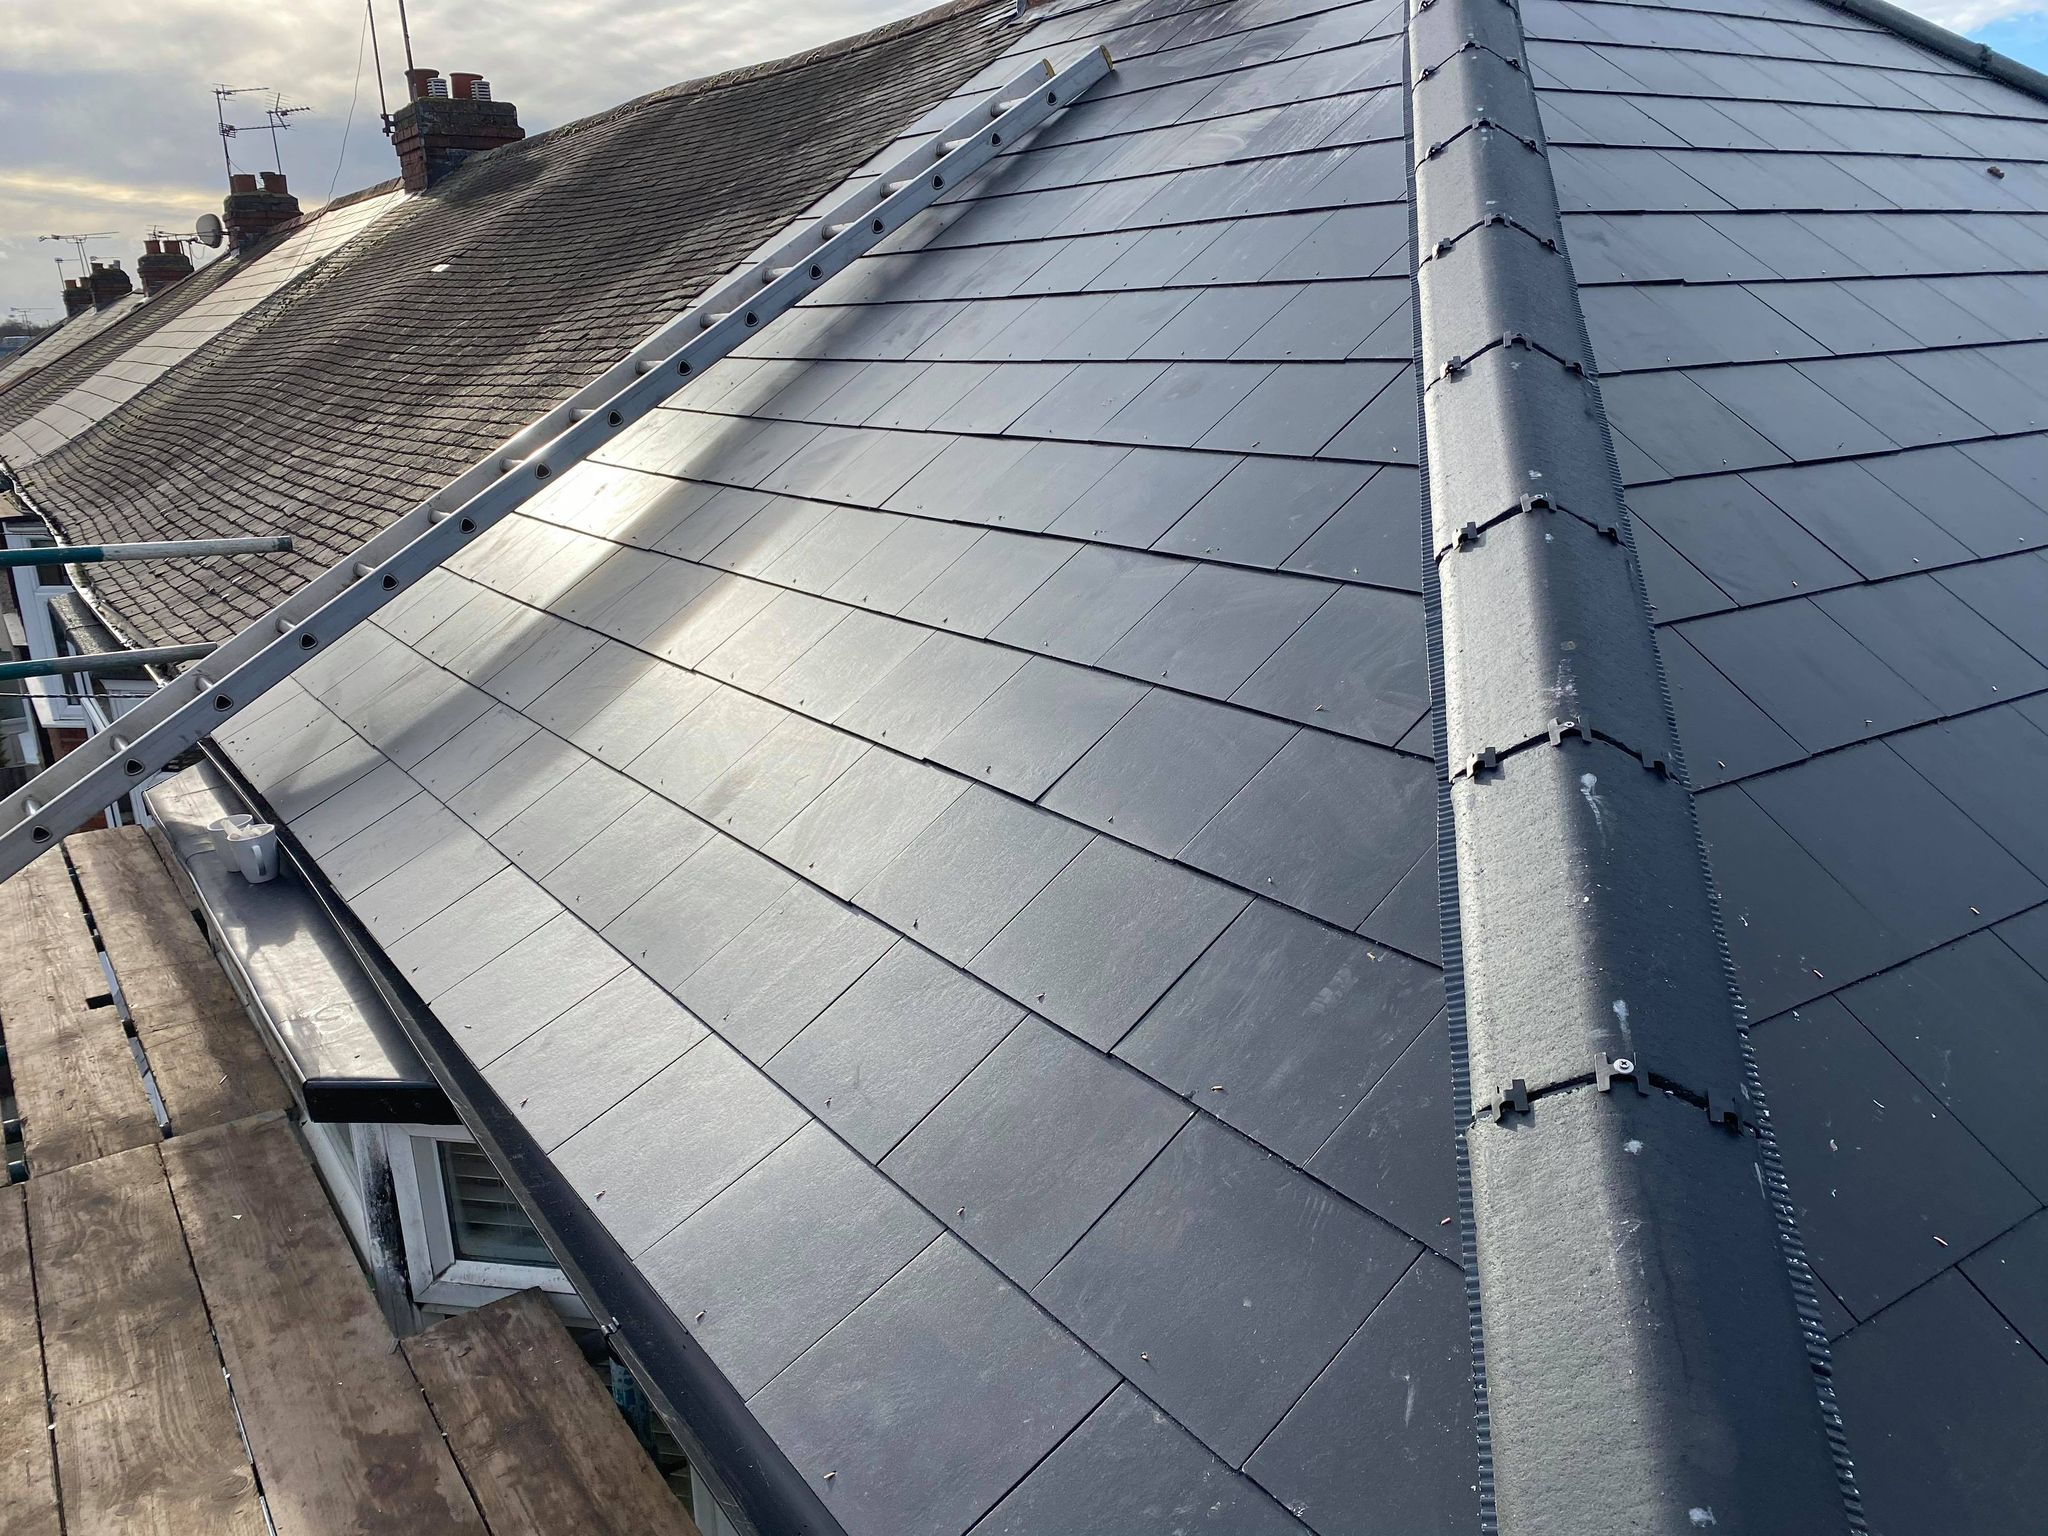 Replacement roof tiles in Coventry